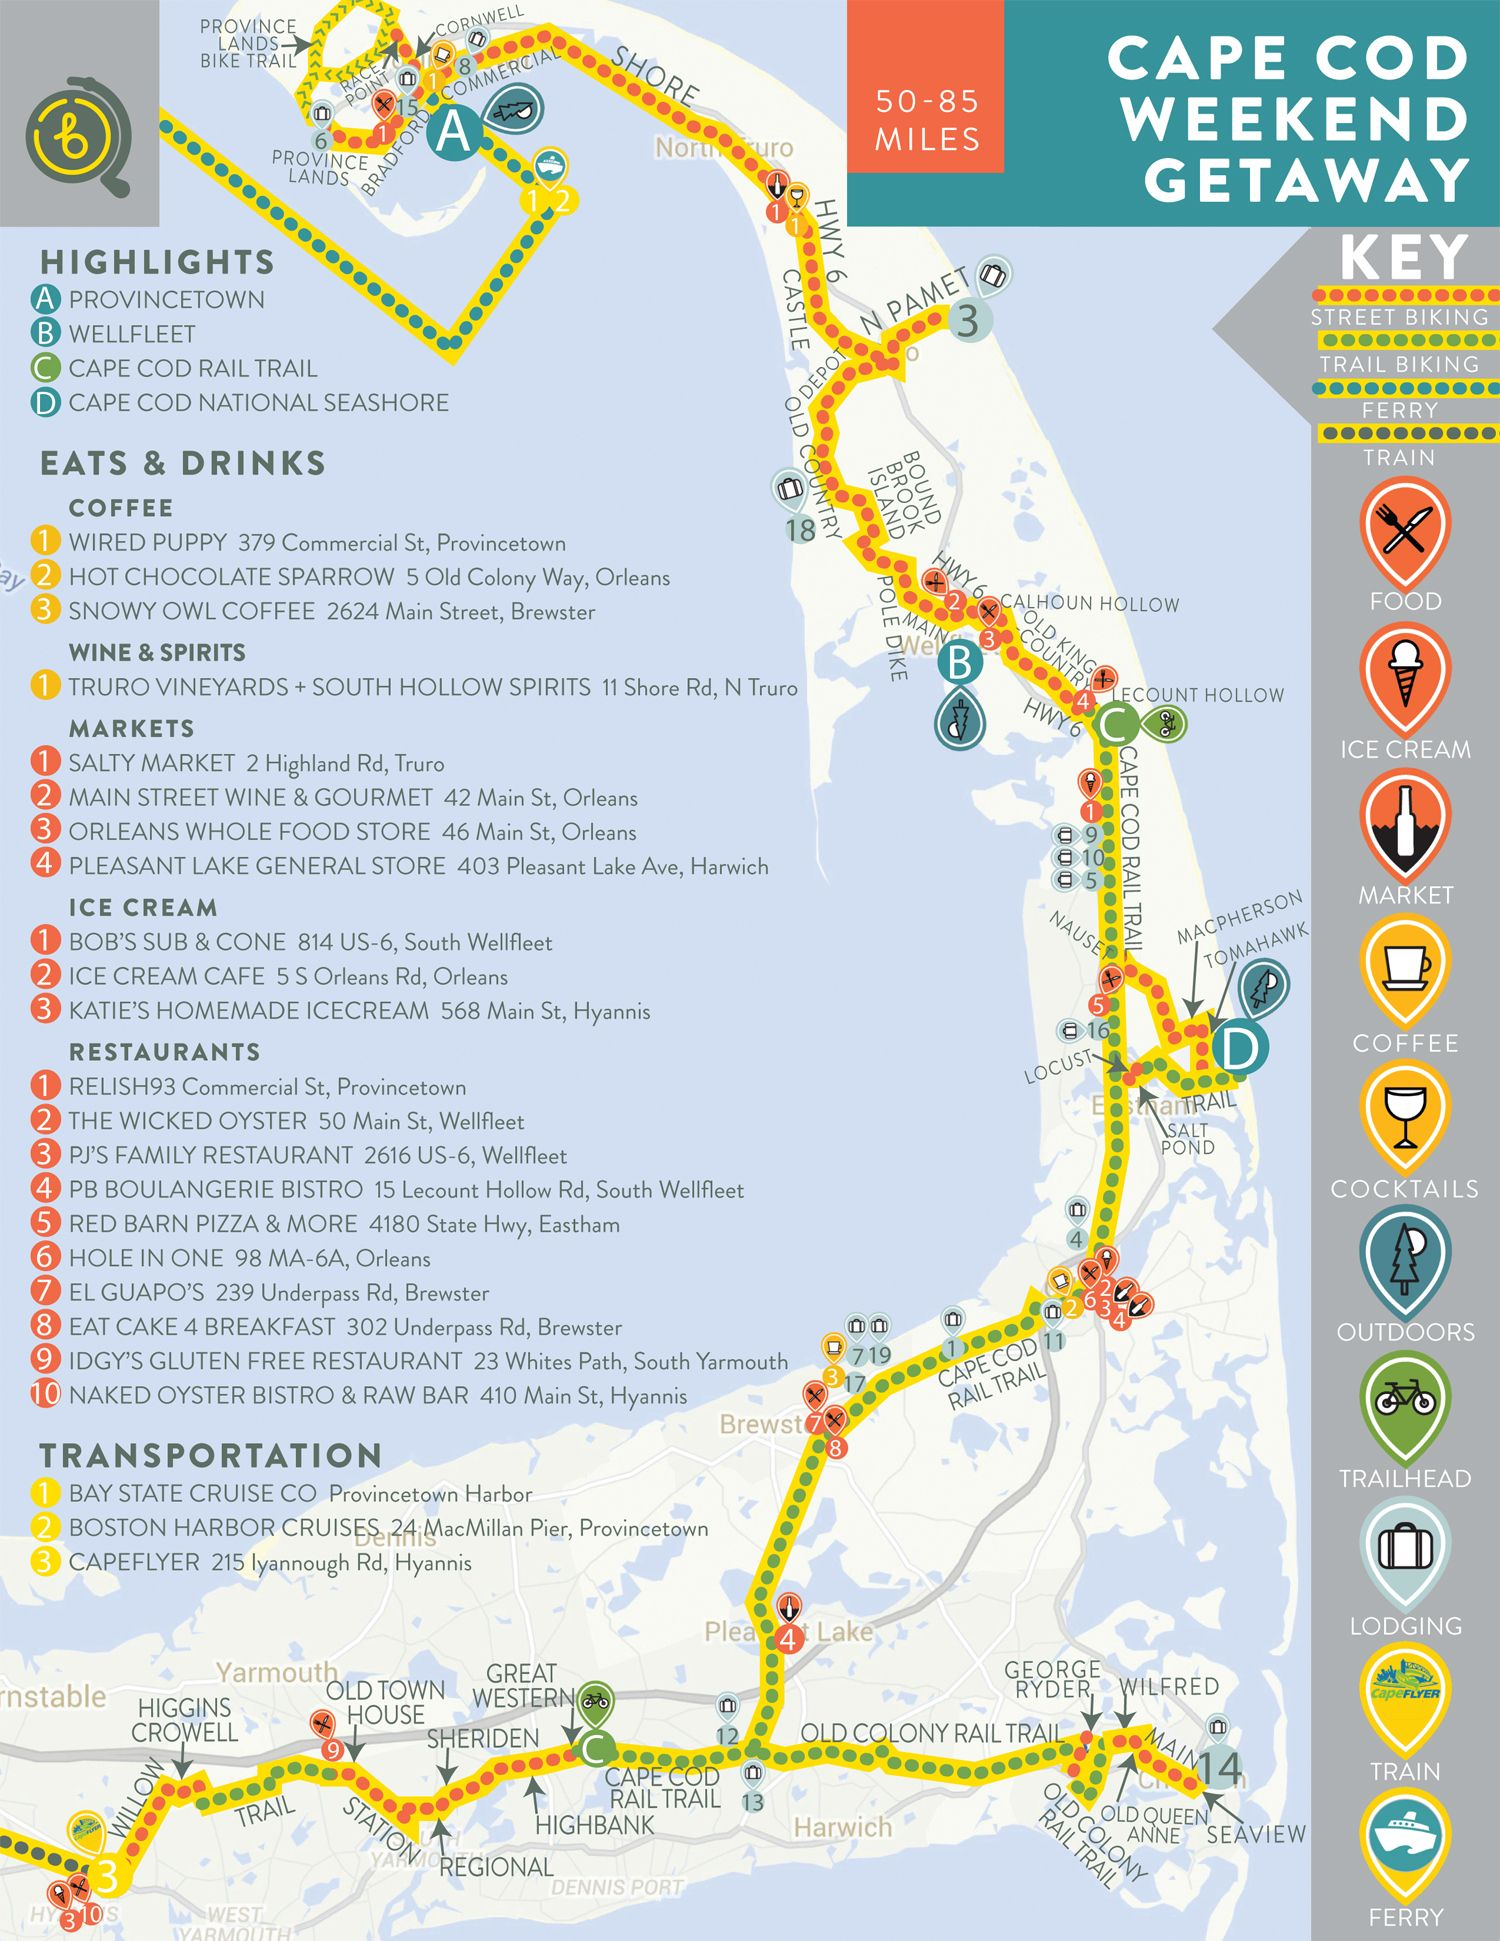 Cape Cod Weekend Getaway By Bike Ferry And Train Bikabout Cape Cod Rail Trail Cape Cod Cape Cod Travel